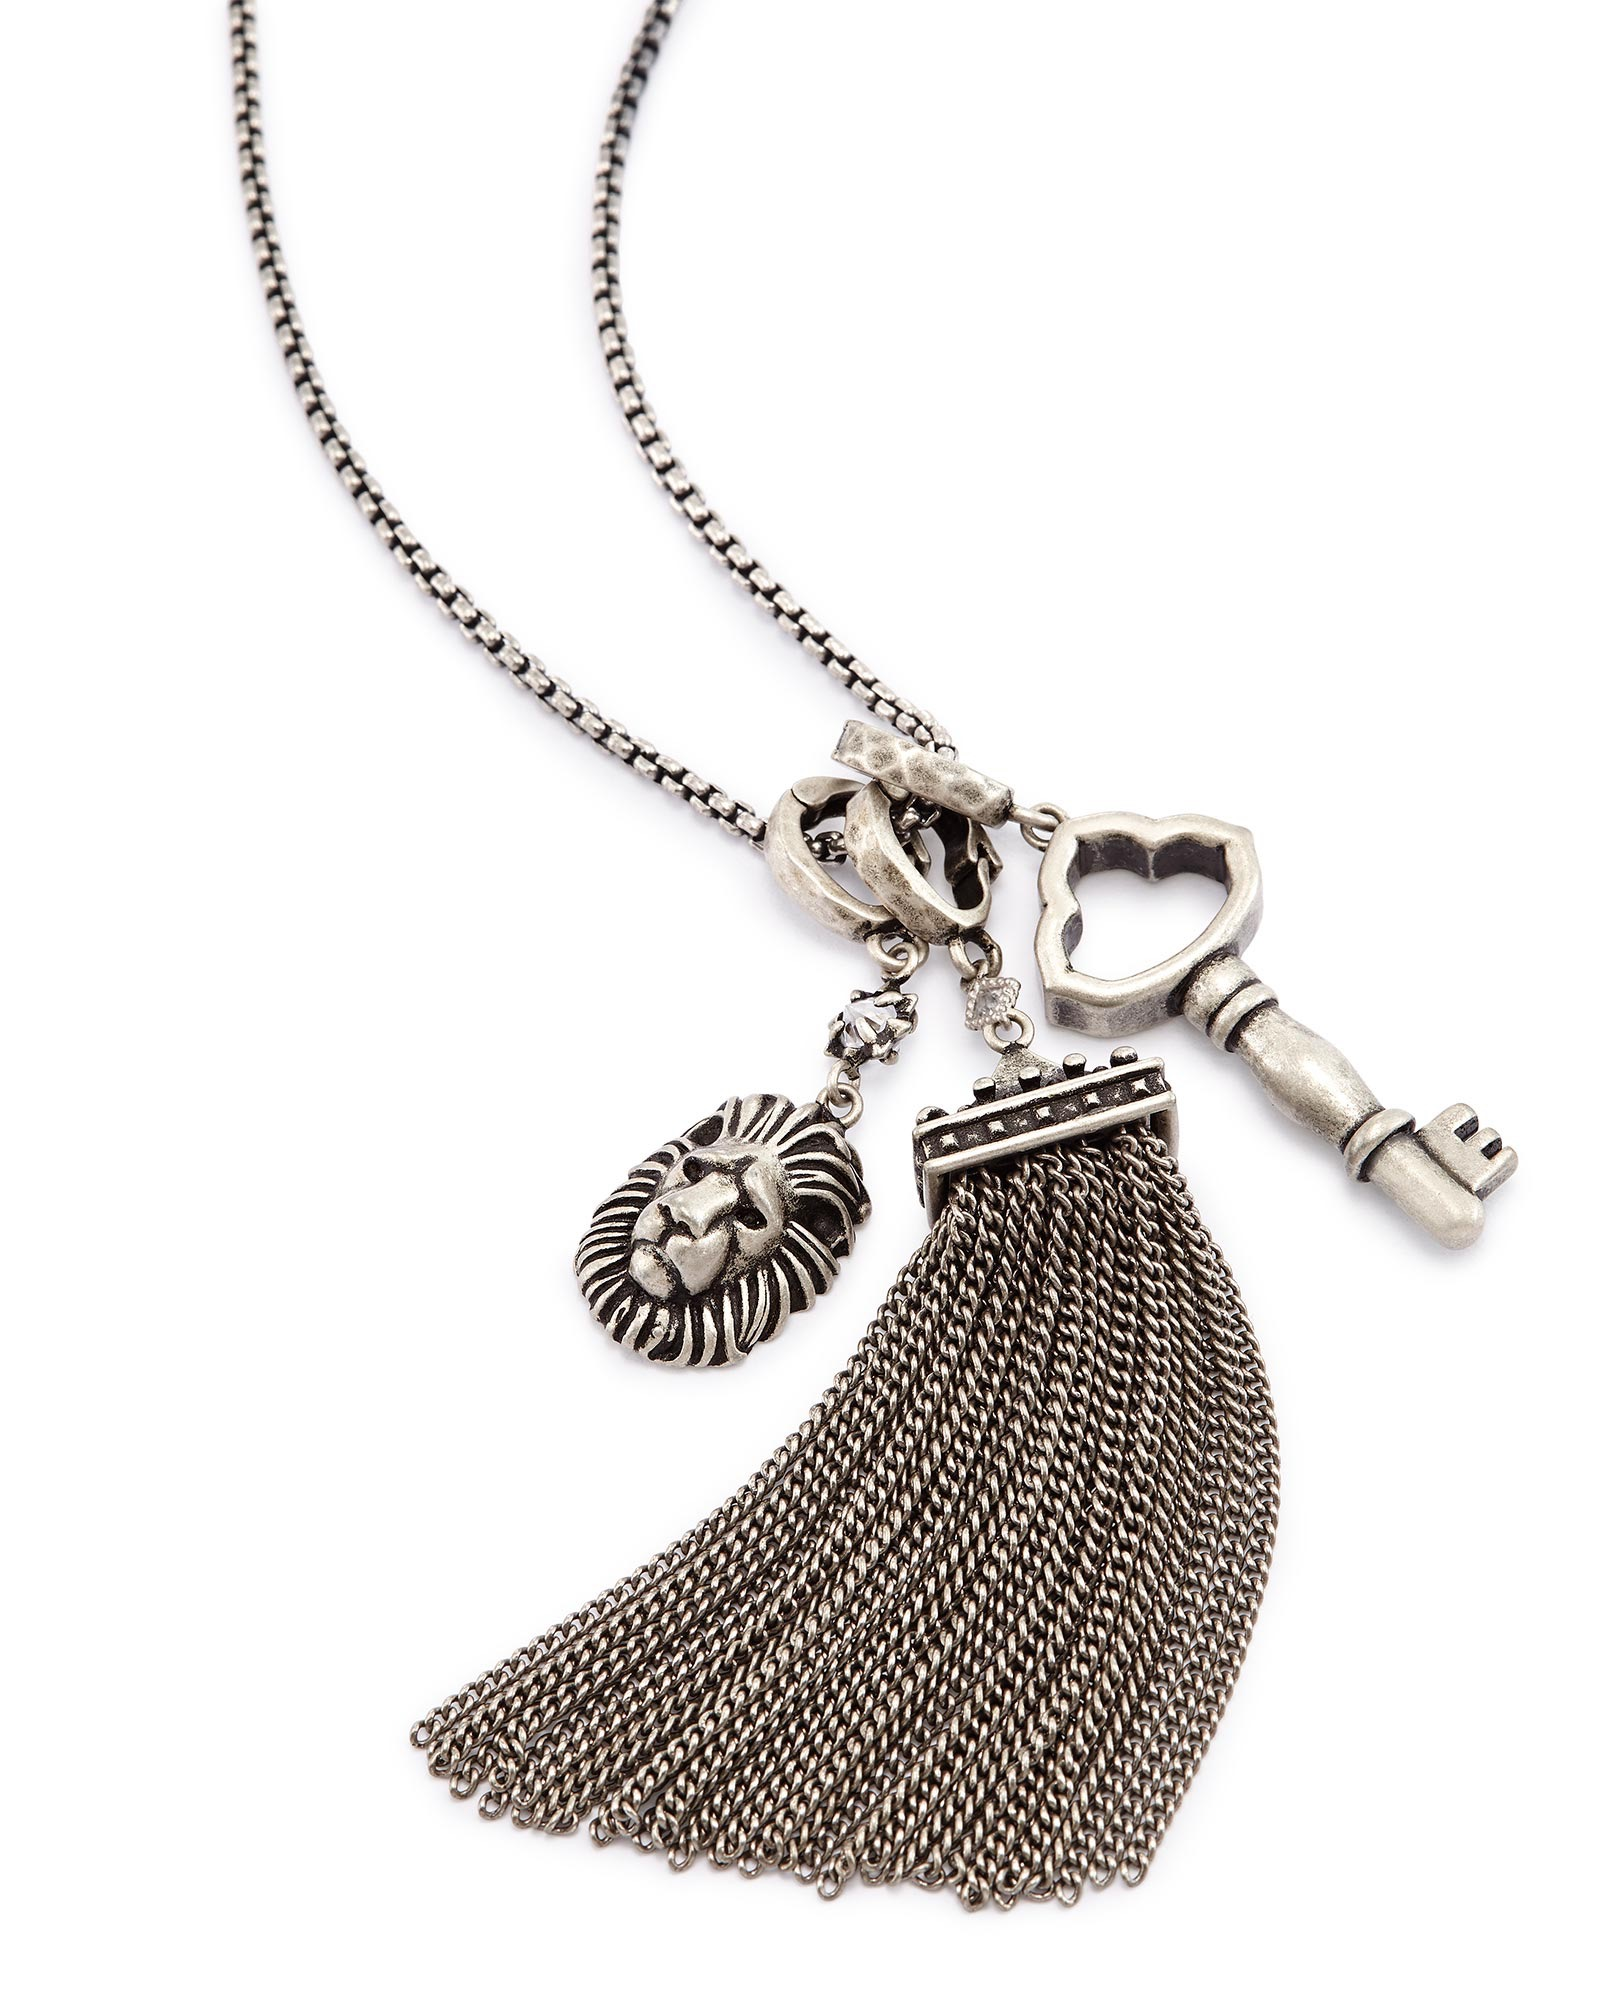 Zosia Long Pendant Necklace in Antique Silver